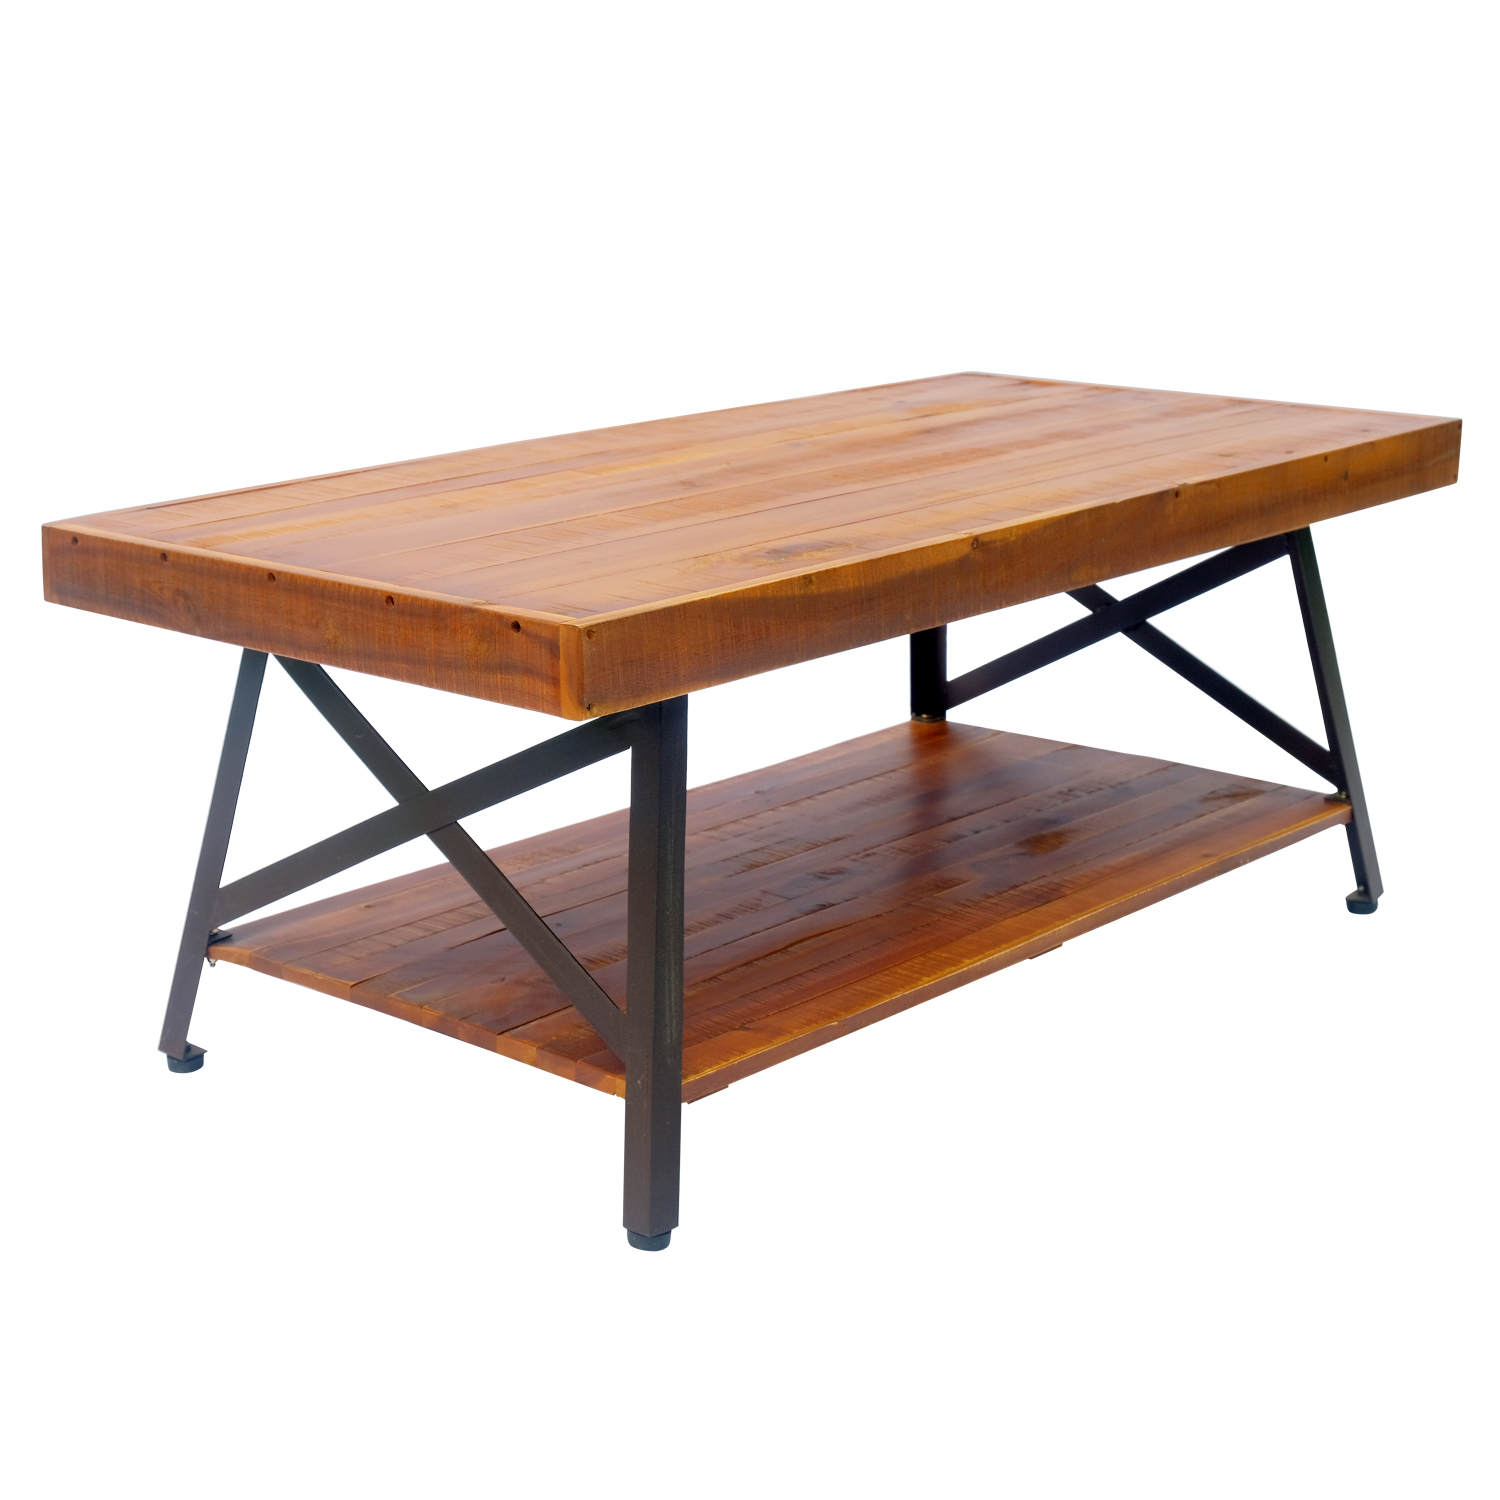 Outsunny Acacia Wood Rustic Patio Coffee Table With Storage Shelf